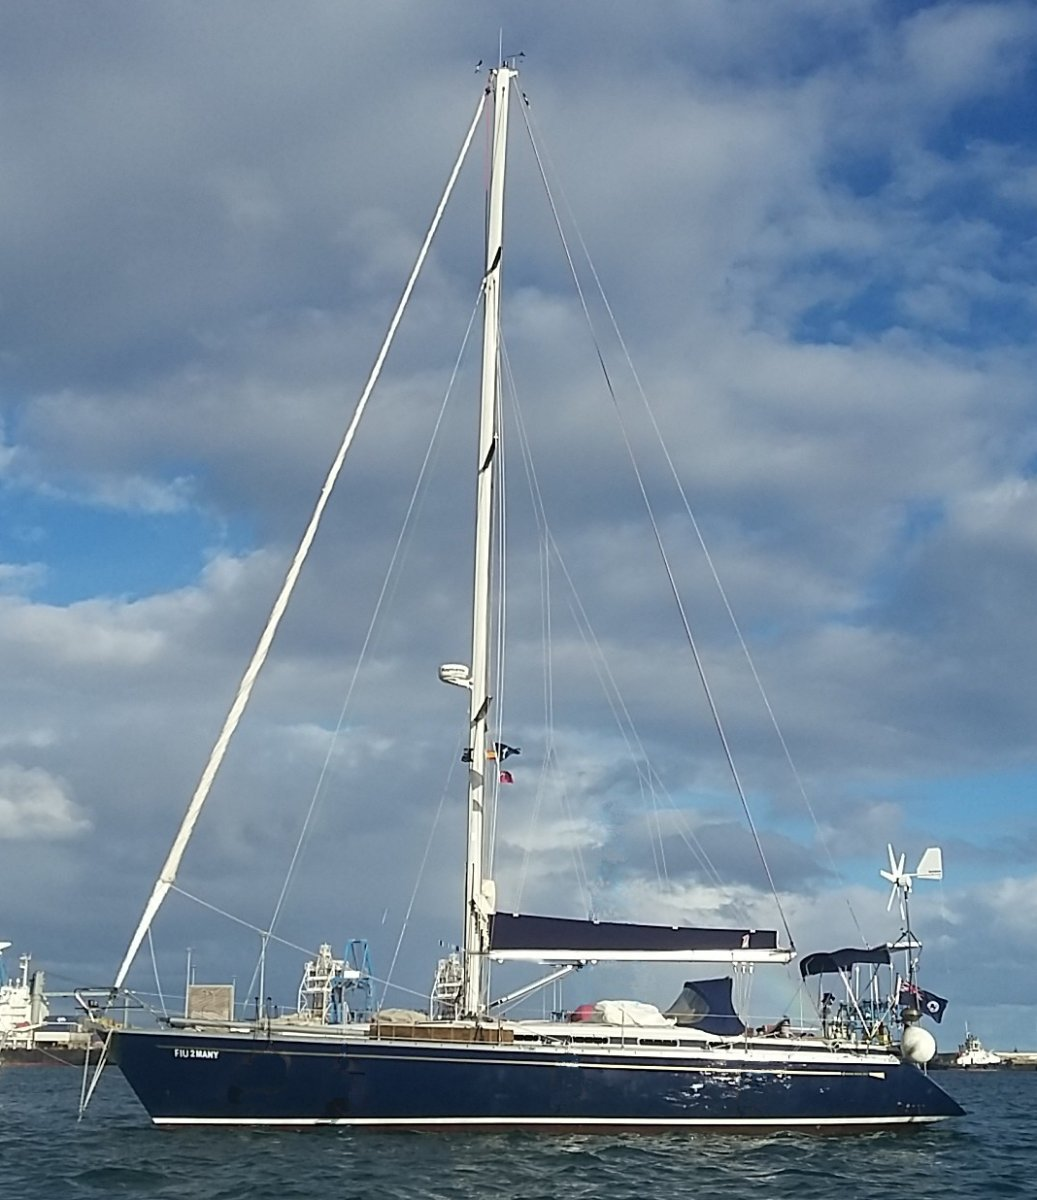 Grand Soleil 46.3 2003 Owner's Version (3 Cabin):FIU 2 MANY